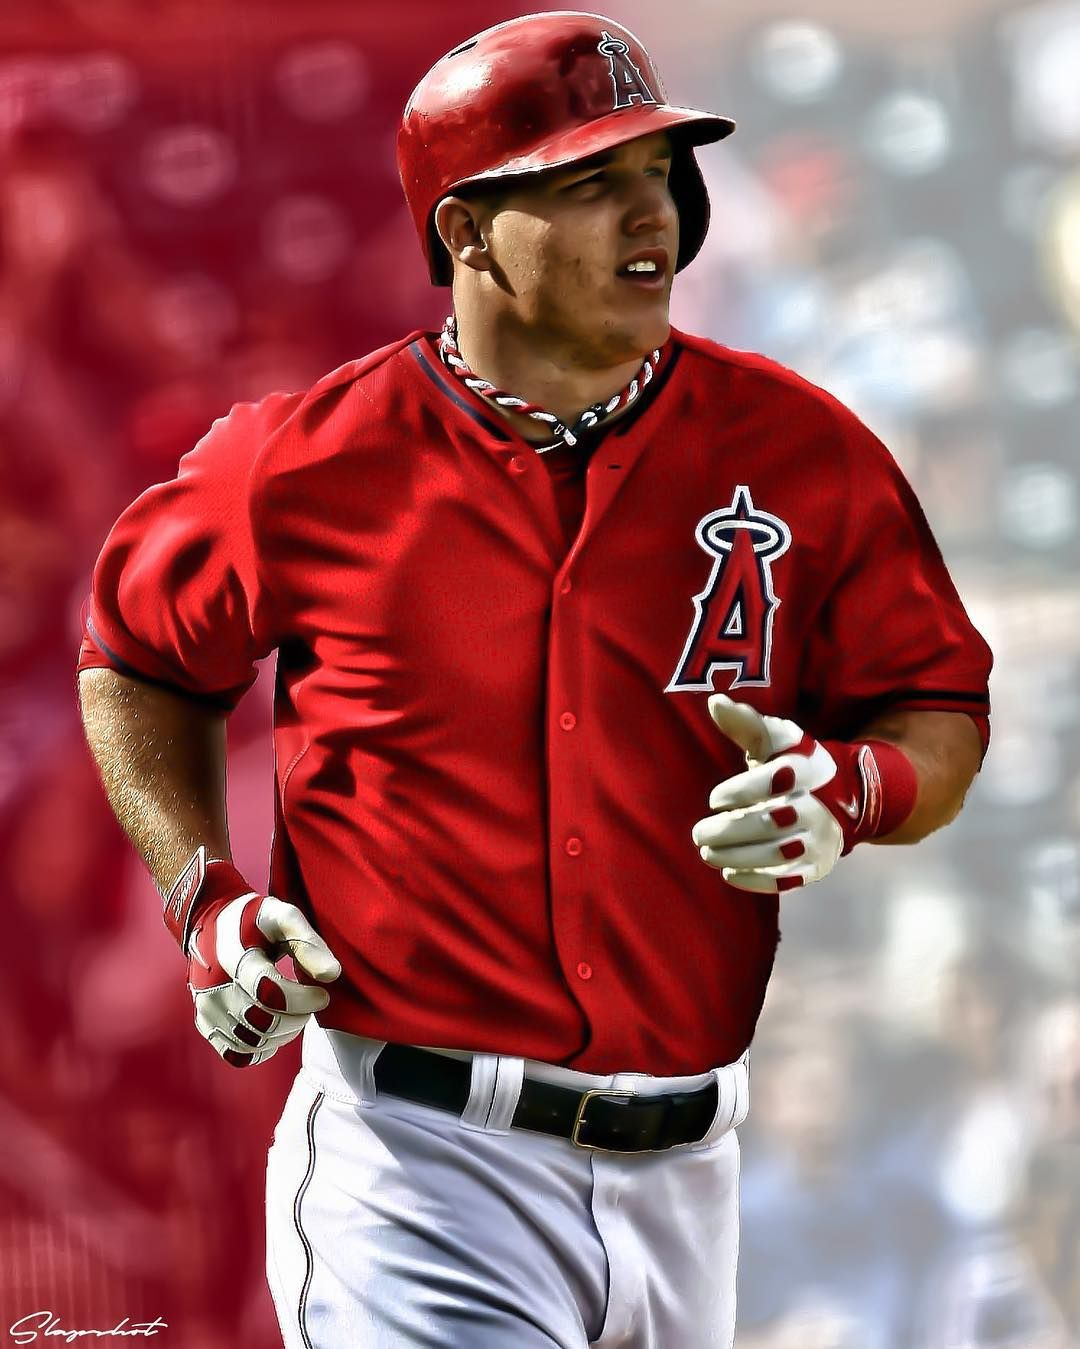 Mike Trout Edit Miketrout Nhl Nba Sports Nfl Edits Instagram Sportsedits Slapshot Mlb Football Basketbal New York Yankees Mike Trout Slap Shot